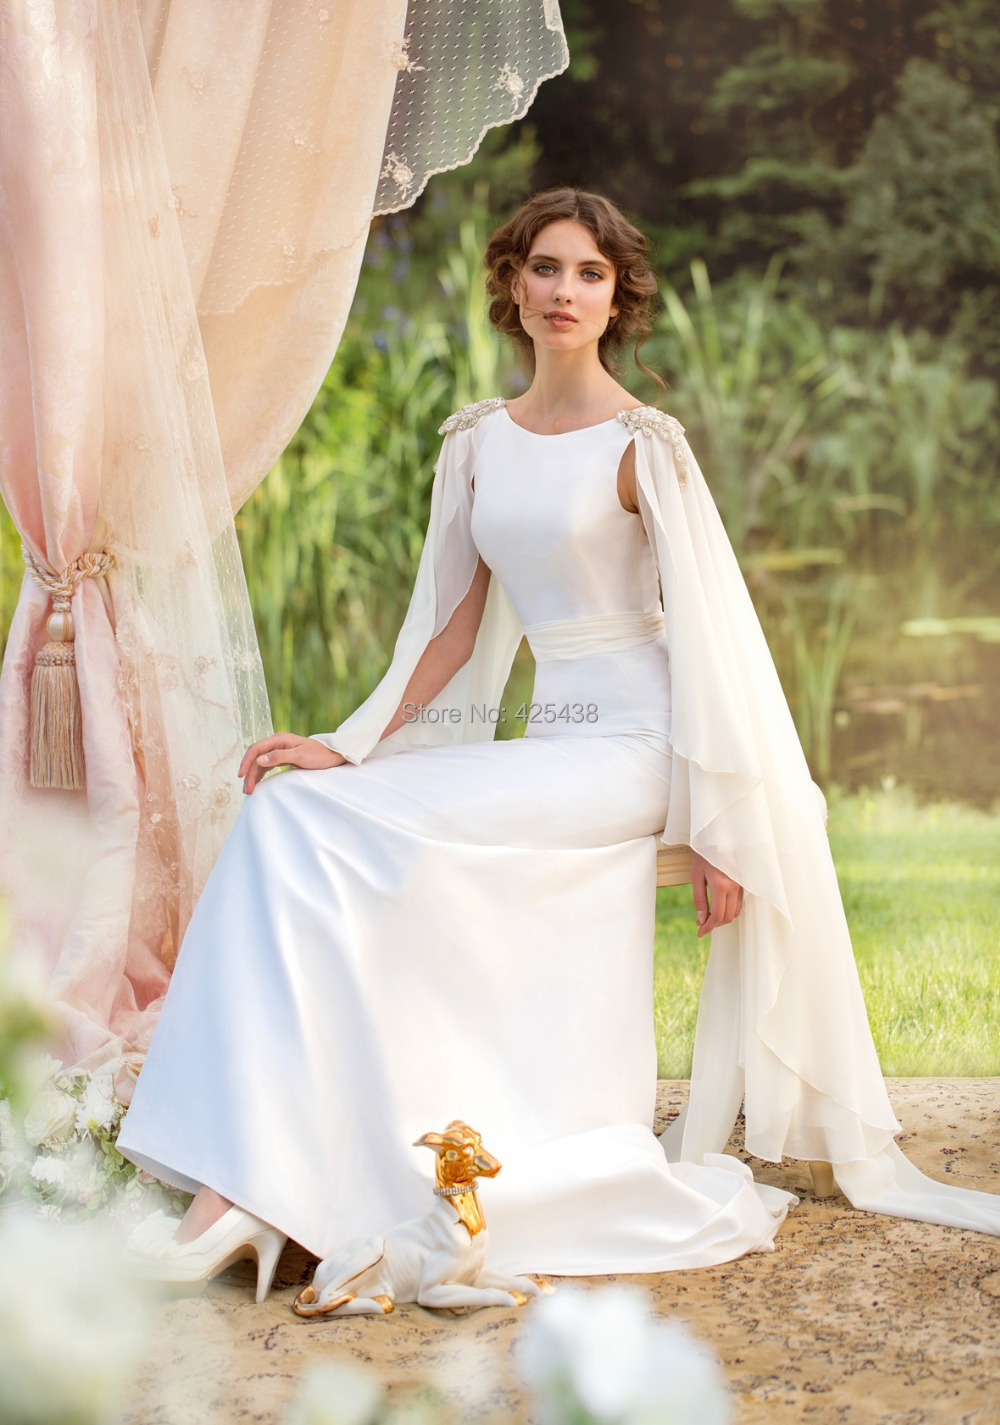 weddings gowns evita sposa greek wedding dresses By choosing an ancient dress you will definitely feel like a Hellenic Goddess A simple pair of sandals and floral hair pieces will complete your